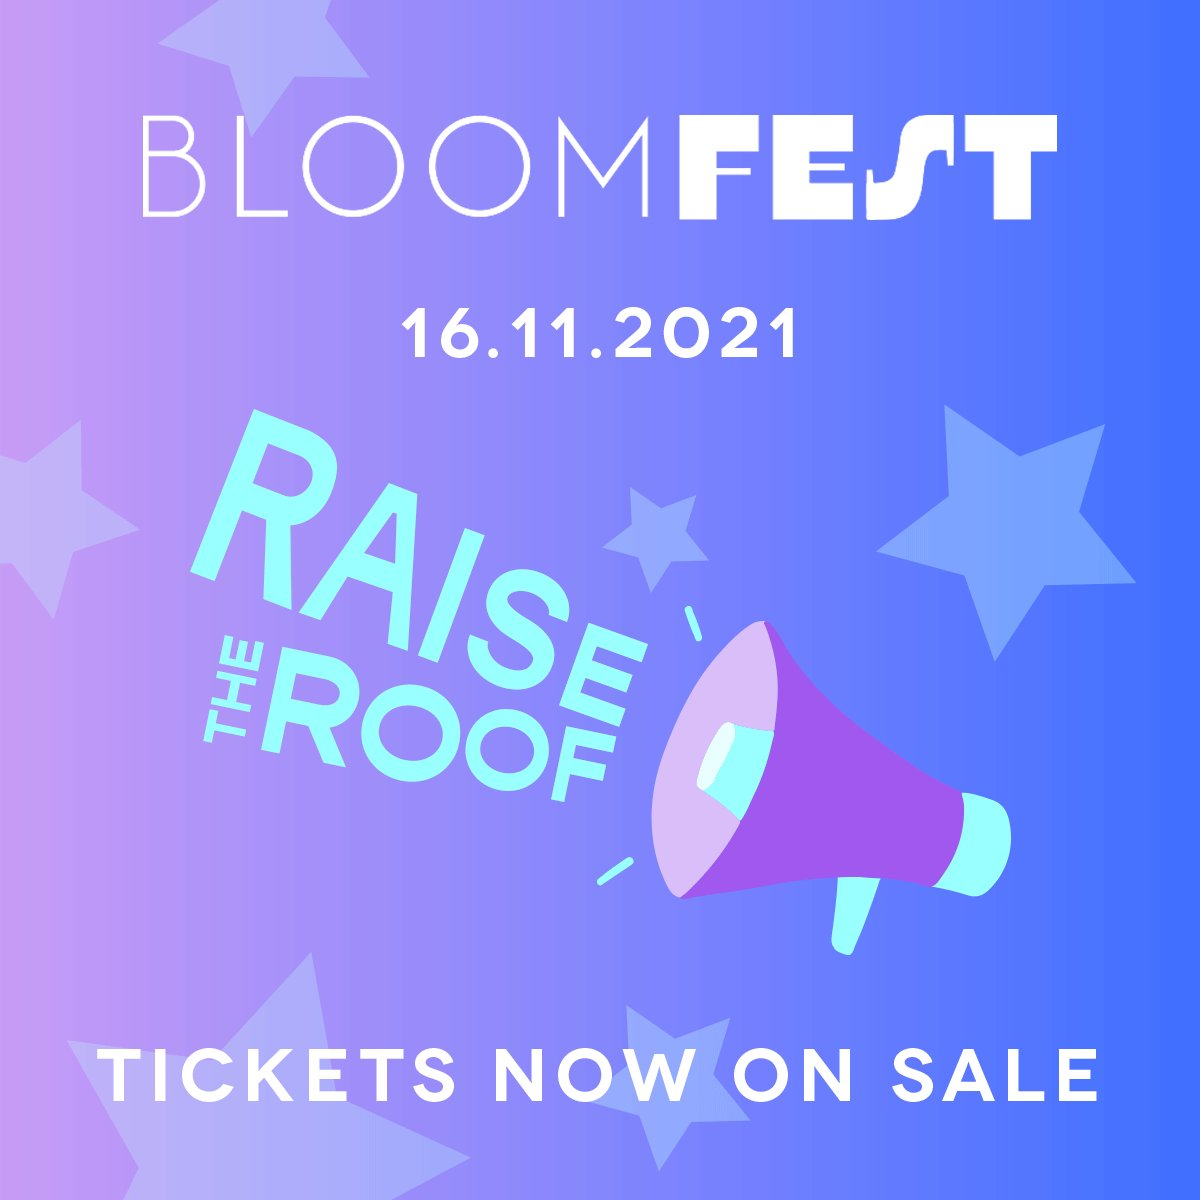 ⭐️ BLOOMFEST 2021 ⭐️ Tickets are NOW LIVE for our flagship event of the year...and it's time to RAISE THE ROOF! Join us virtually on Tuesday 16th November: bloomfest.cventevents.com/event/e26a1cda…